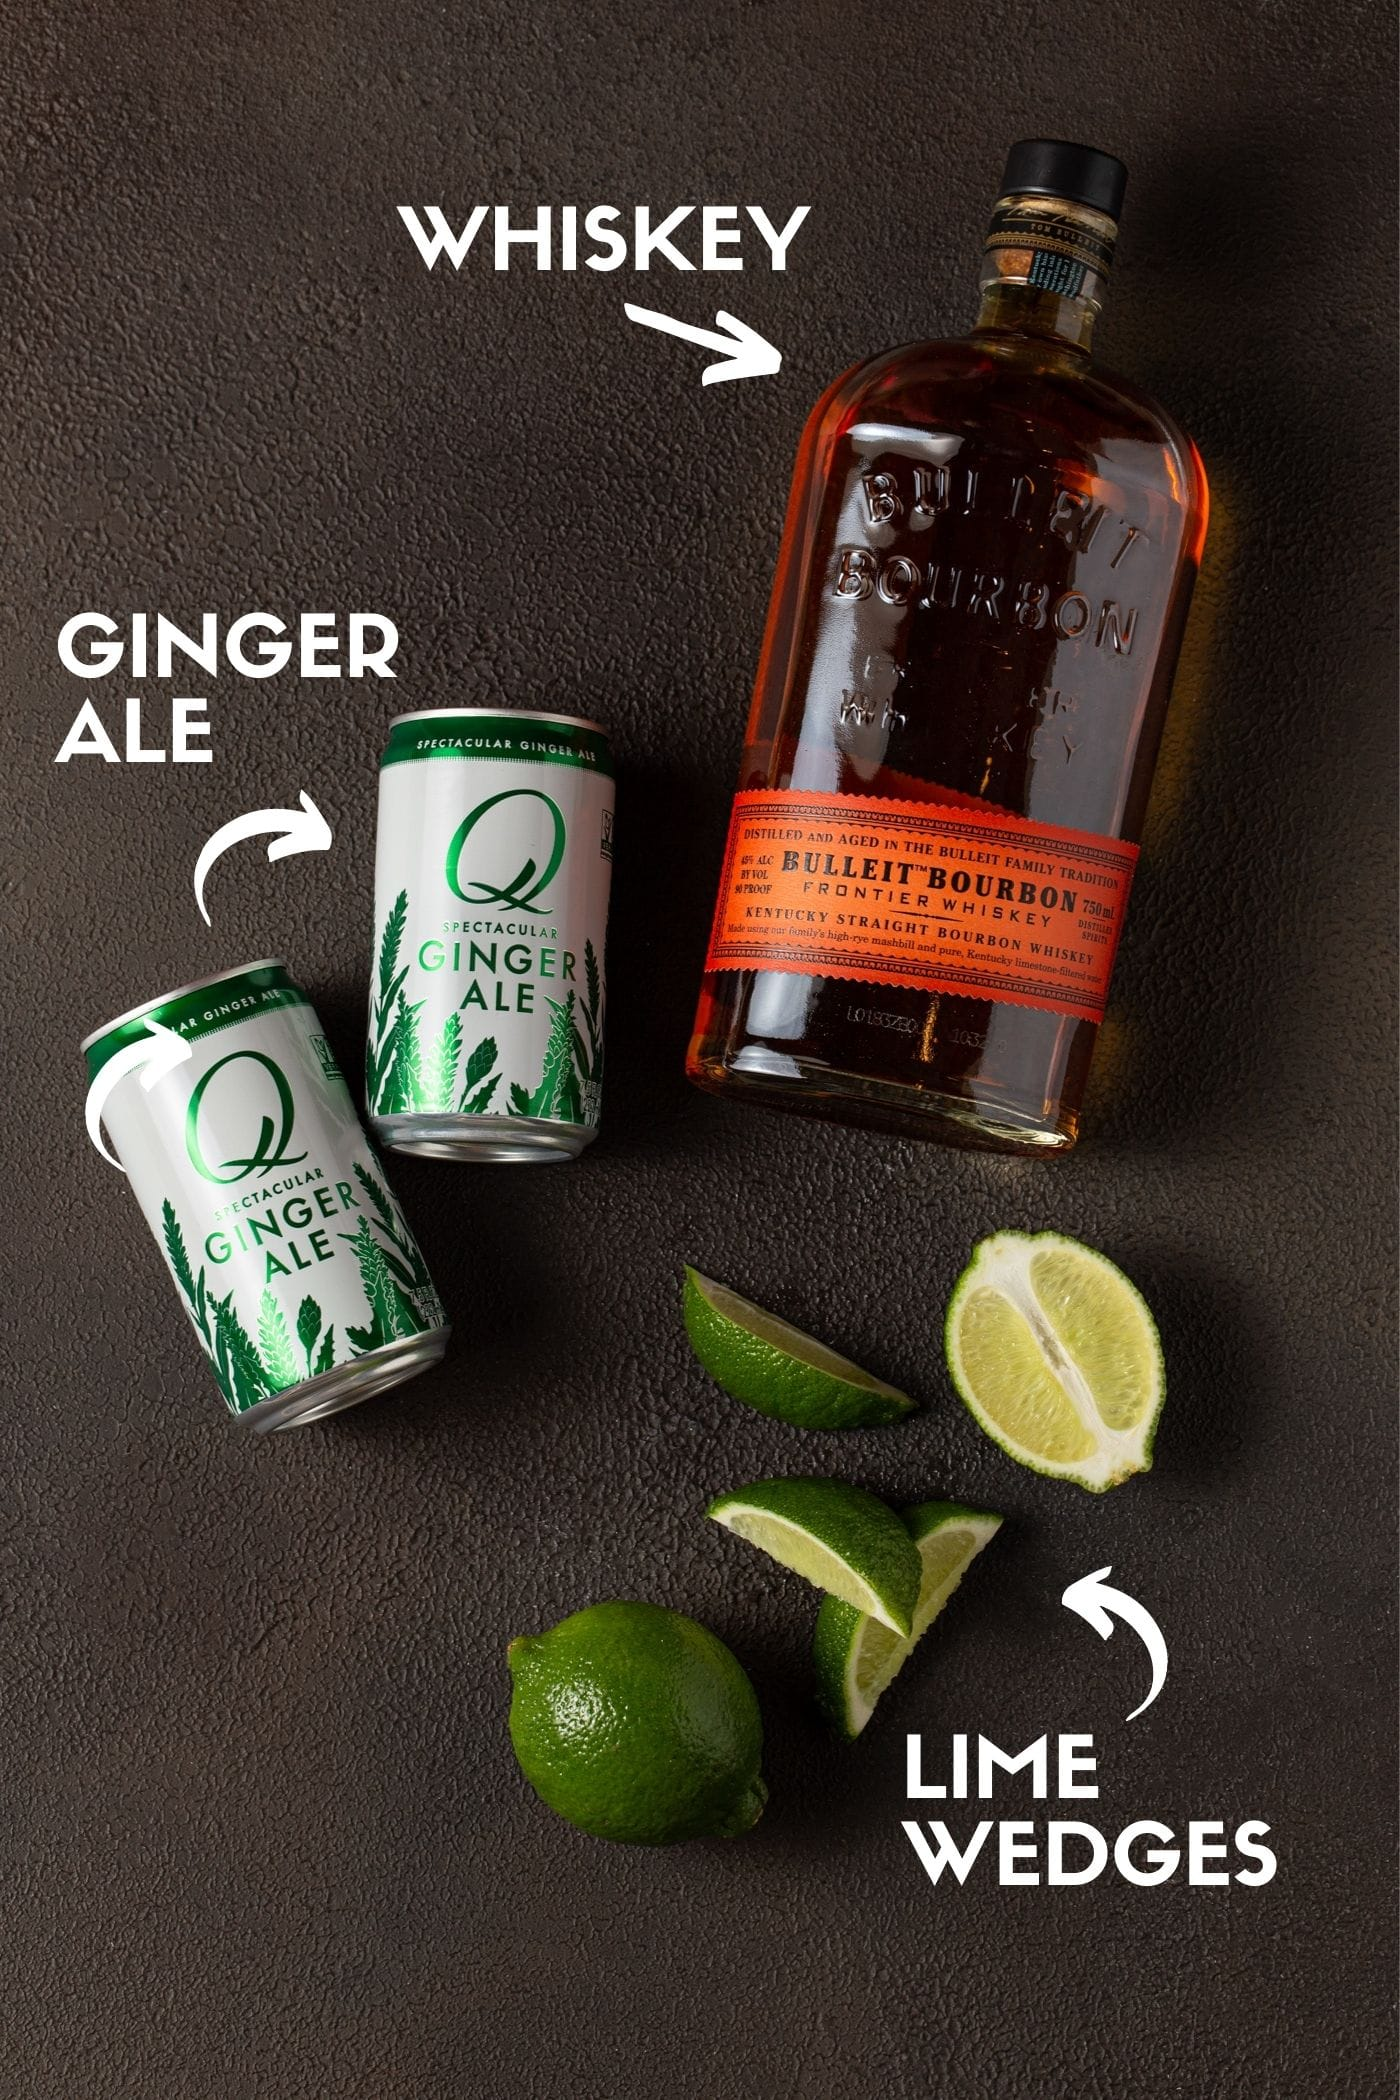 Ingredients for Whiskey Ginger drink, including, whiskey, ginger ale and lime wedges.